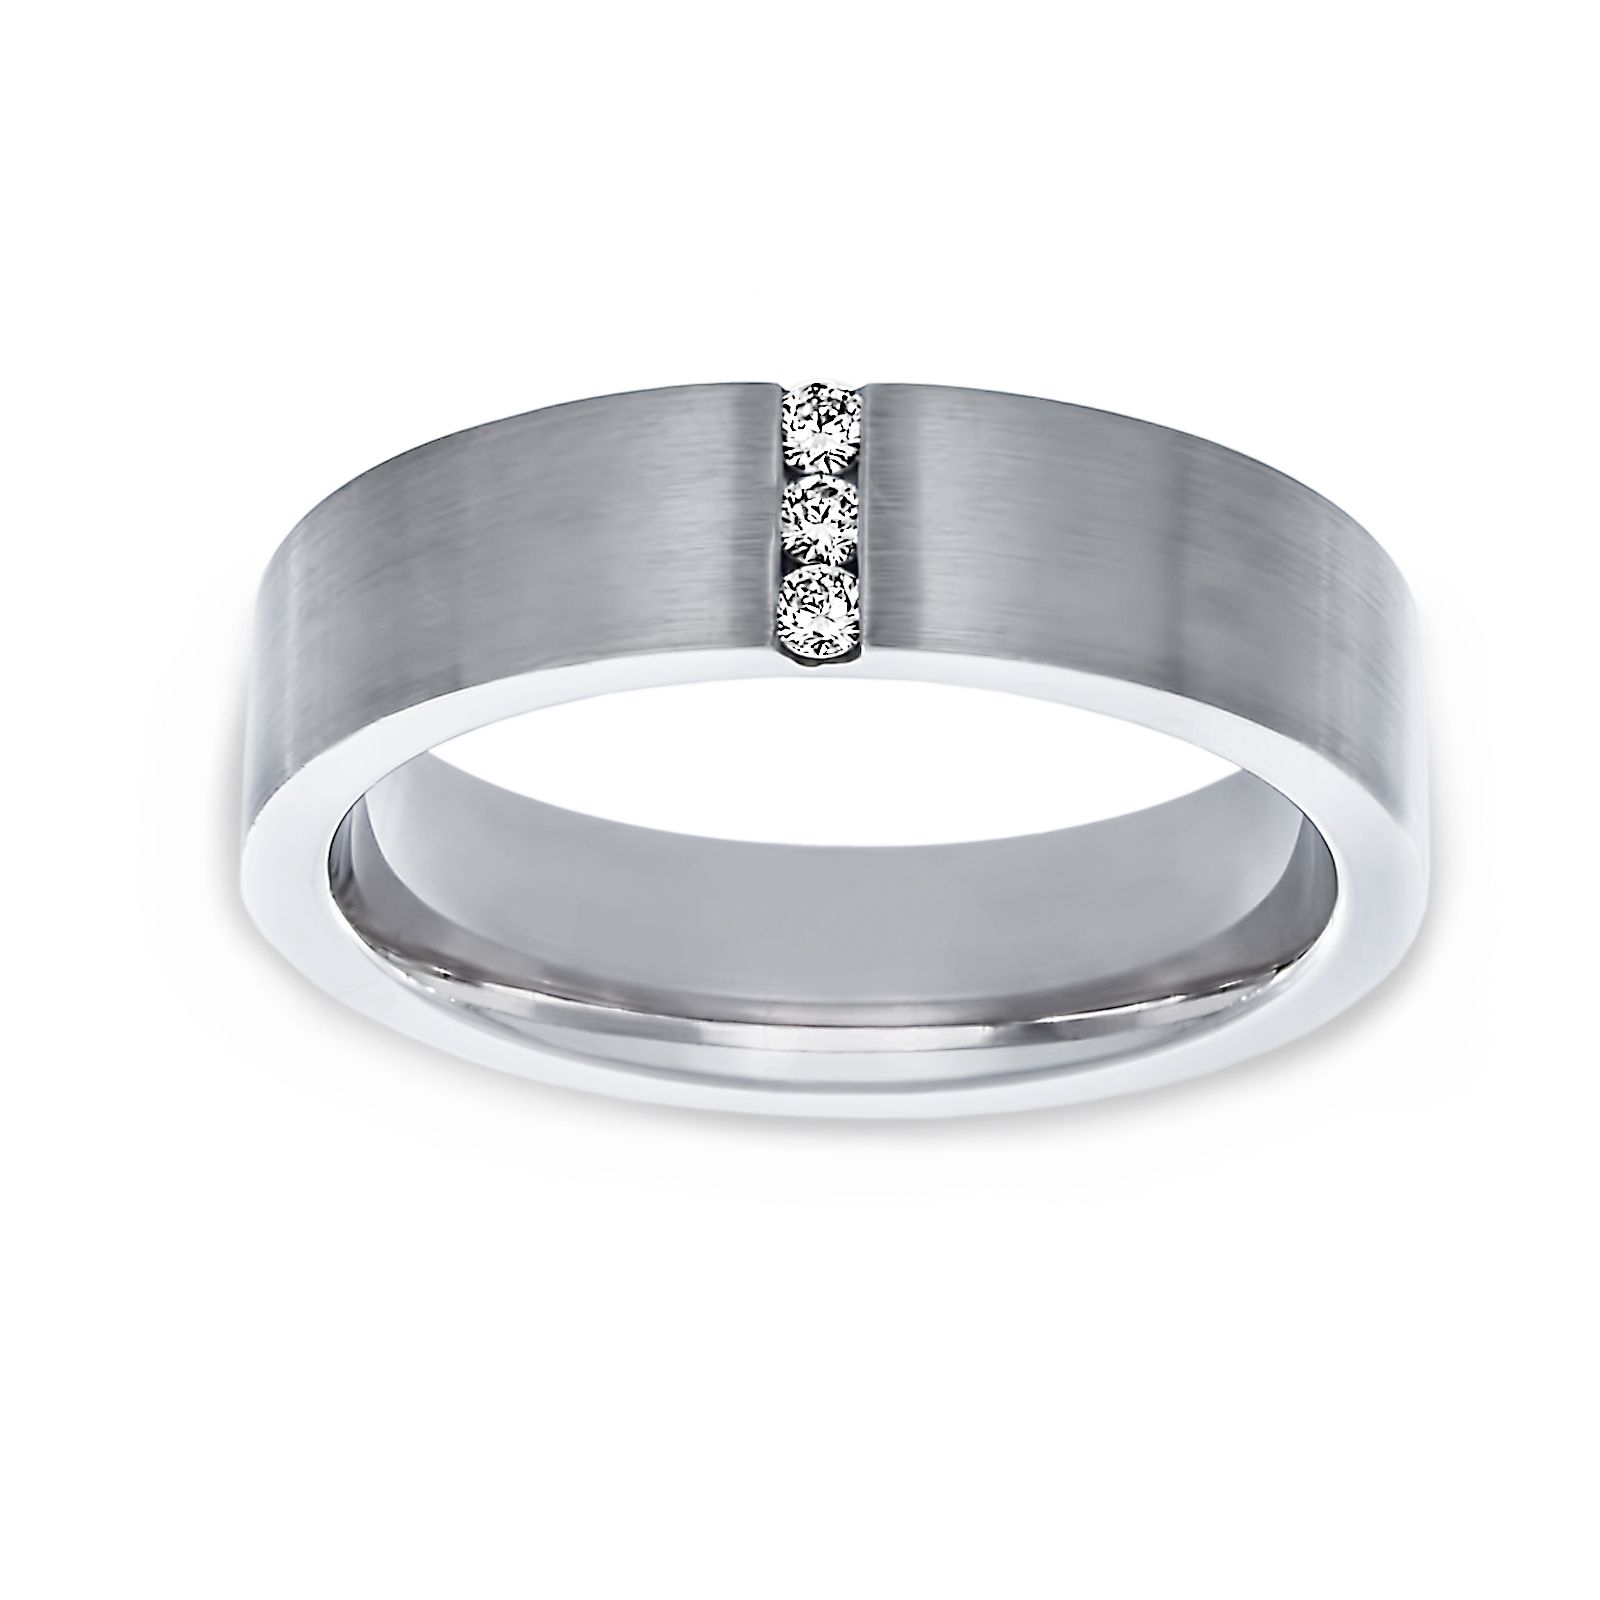 Twolondon Wide Satin Finish Vertical Diamond Row Wedding Band Regarding Most Up To Date Vertical Diamond Row Wedding Bands (View 4 of 25)